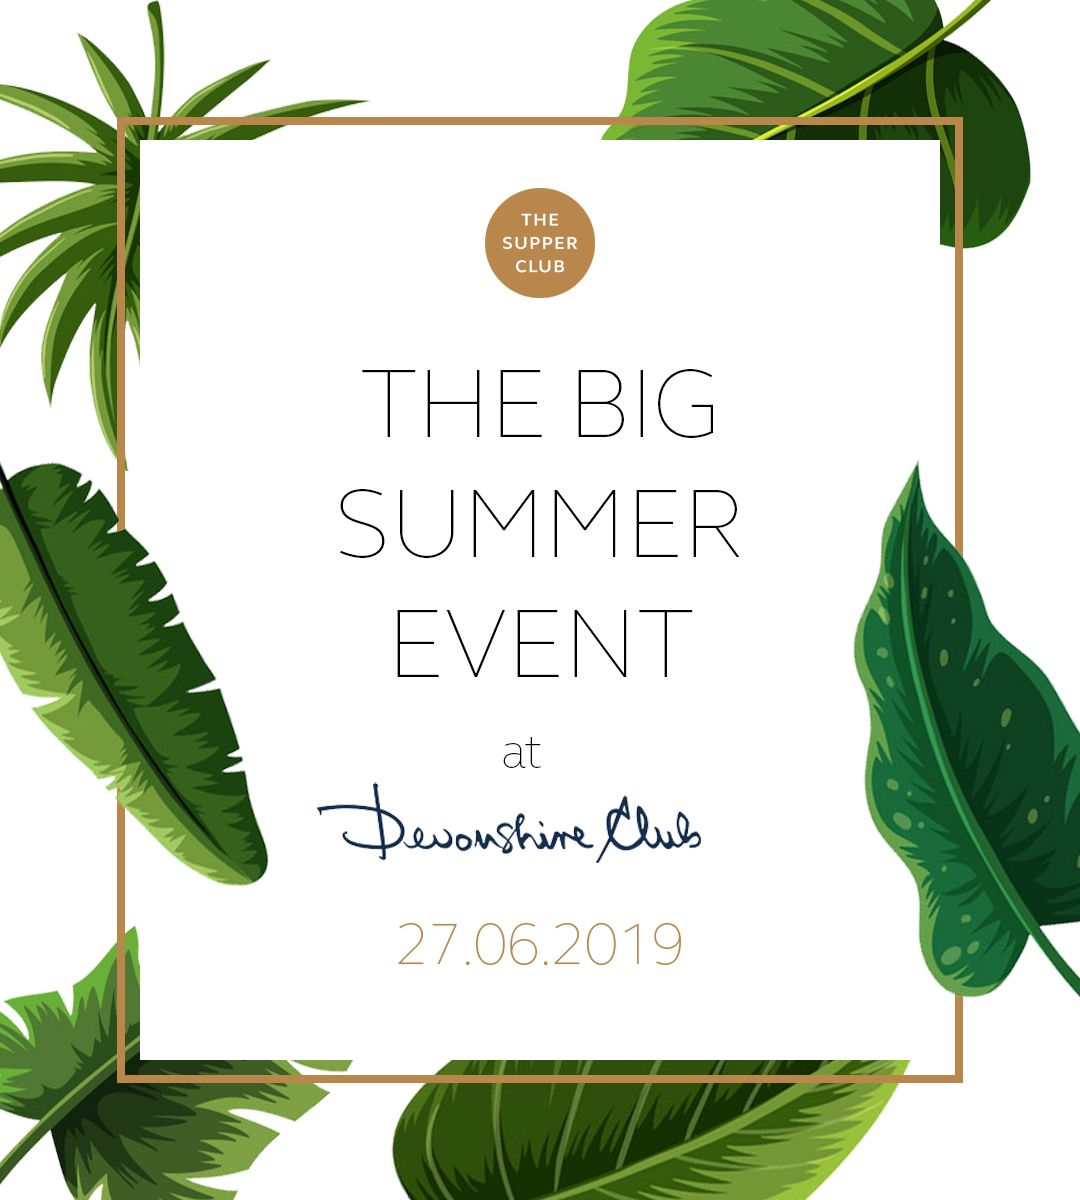 Image of Big Summer Event 2019 event